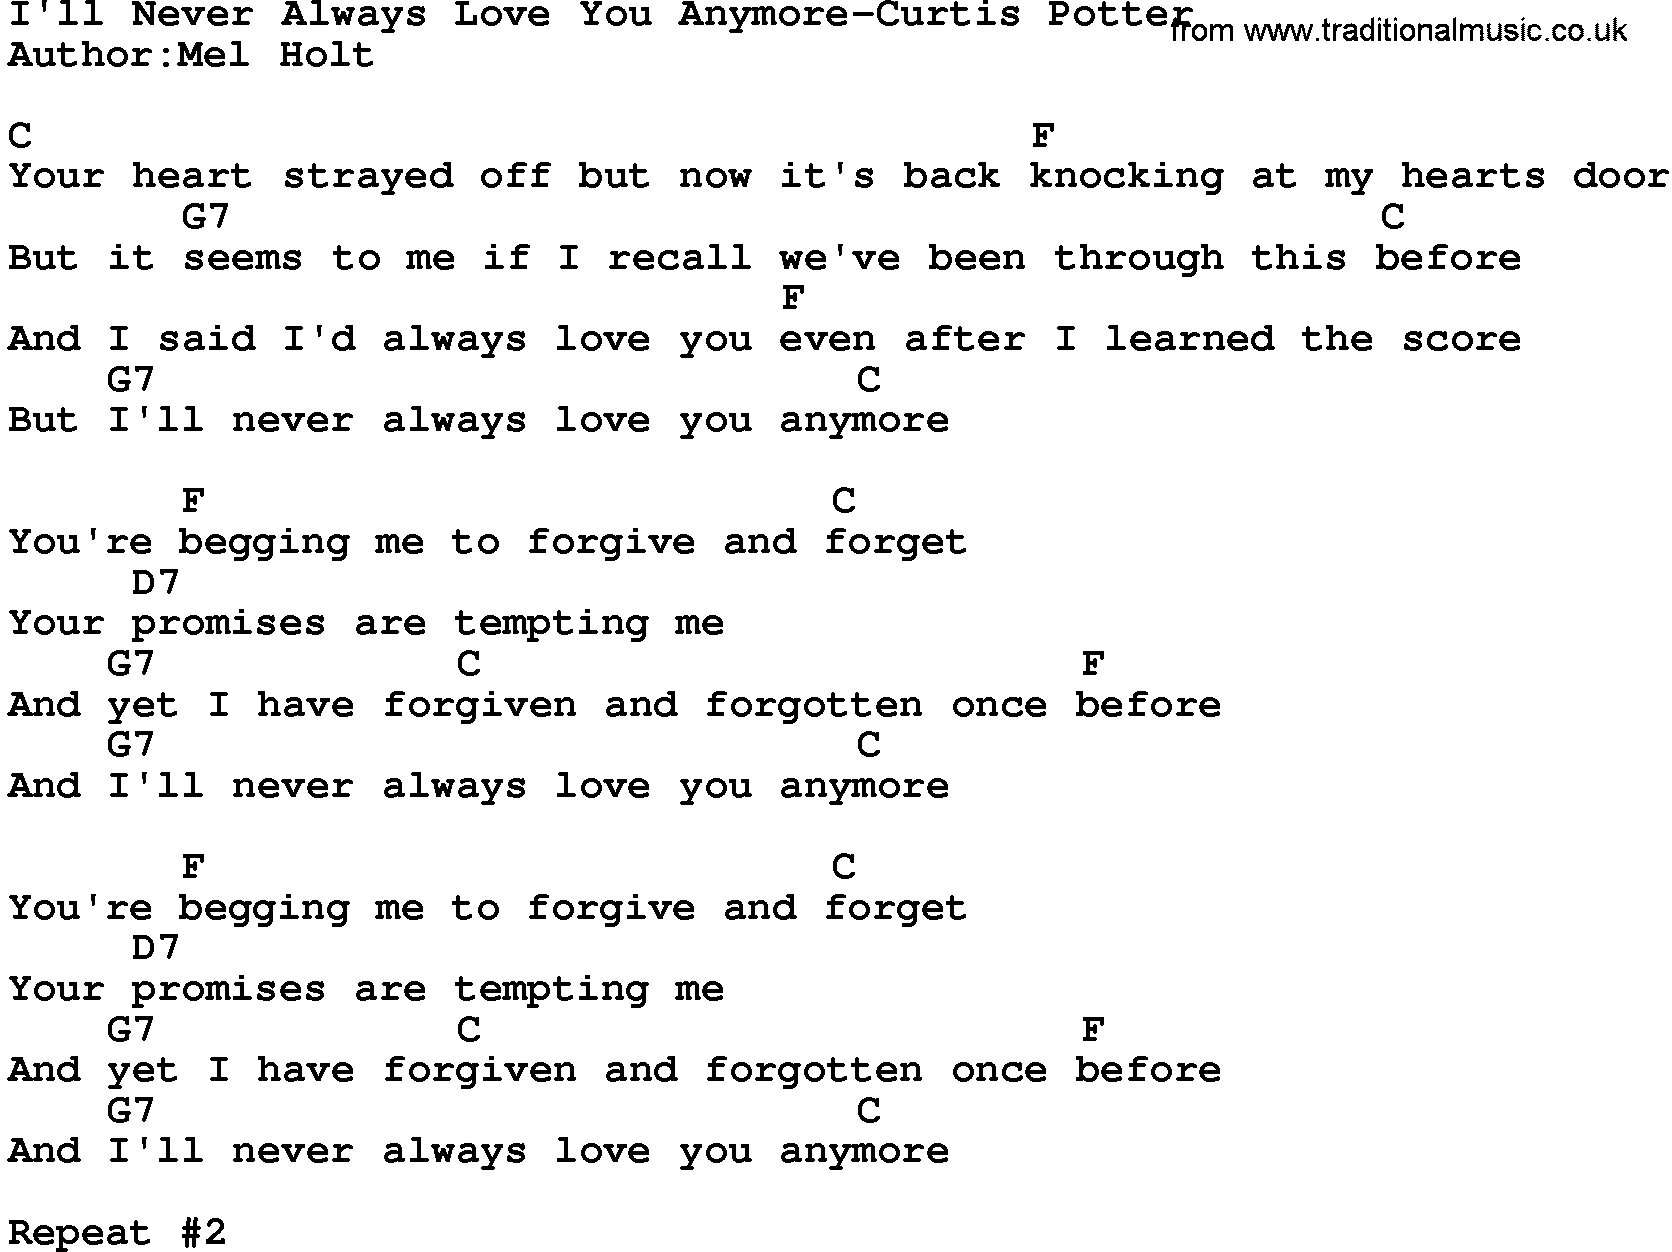 Country Musicill Never Always Love You Anymore Curtis Potter